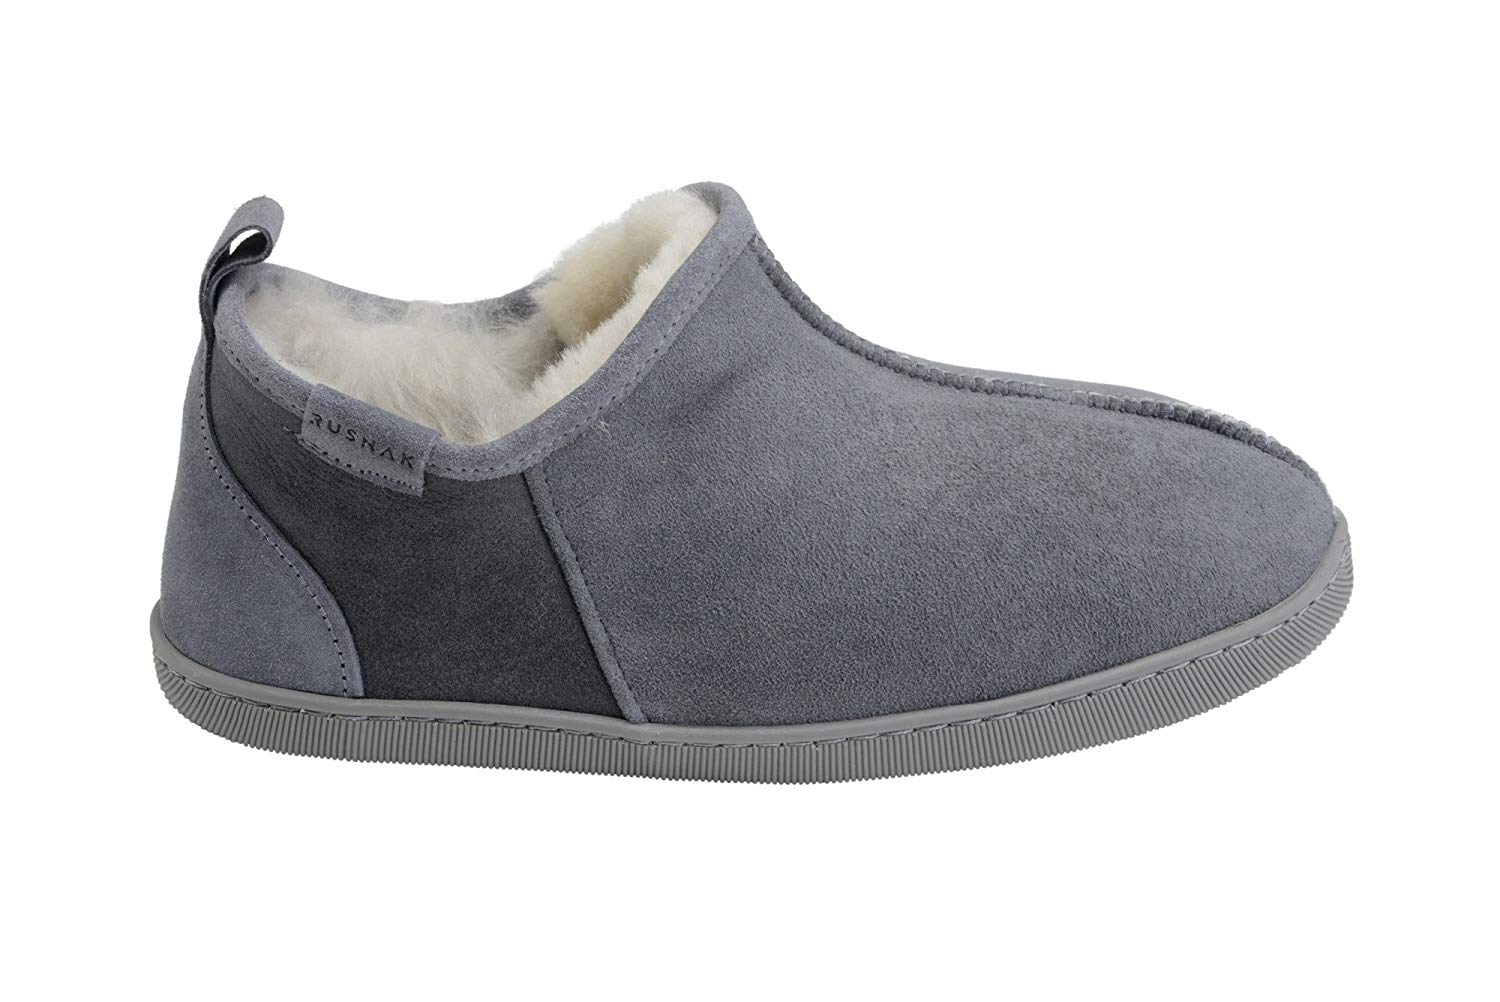 1ece599a502 Get Quotations · Mens Luxury Fully Wool Lined Genuine Sheepskin Leather  Ankle Boot Slippers B004